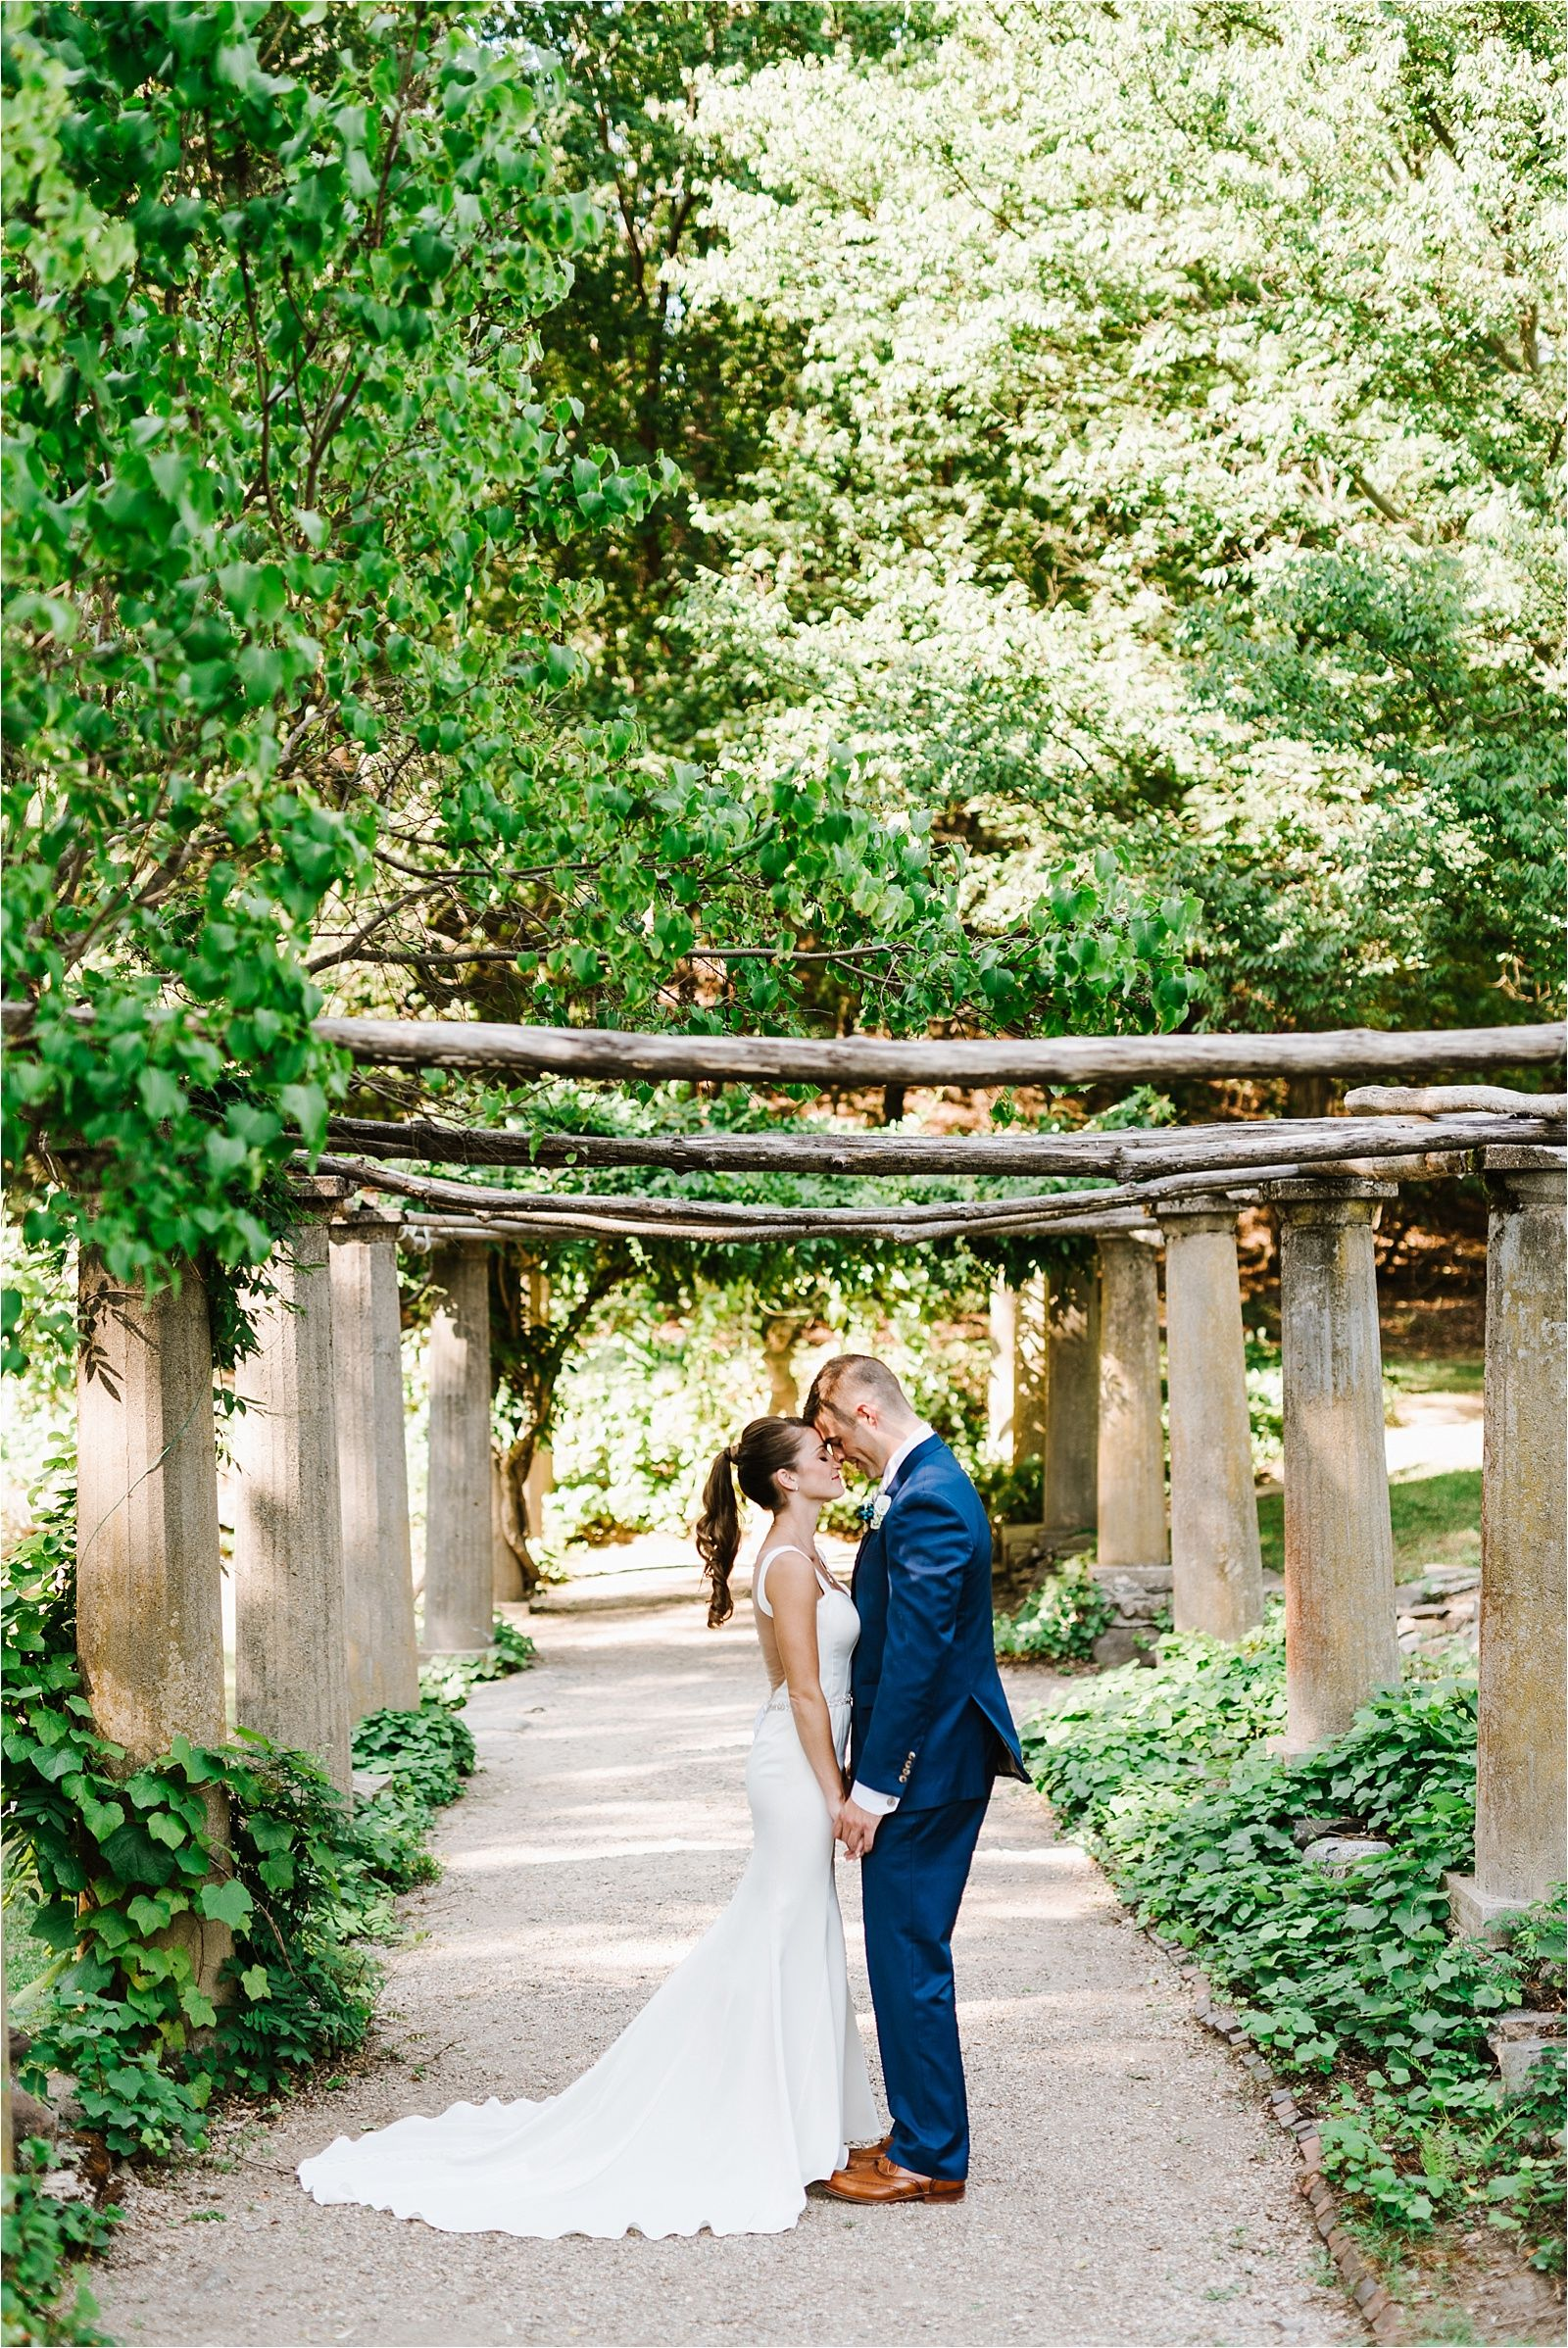 This Very Moment Was Utterly Perfect Codman Estate Wedding Annmarie Swift Boston New England Photographer